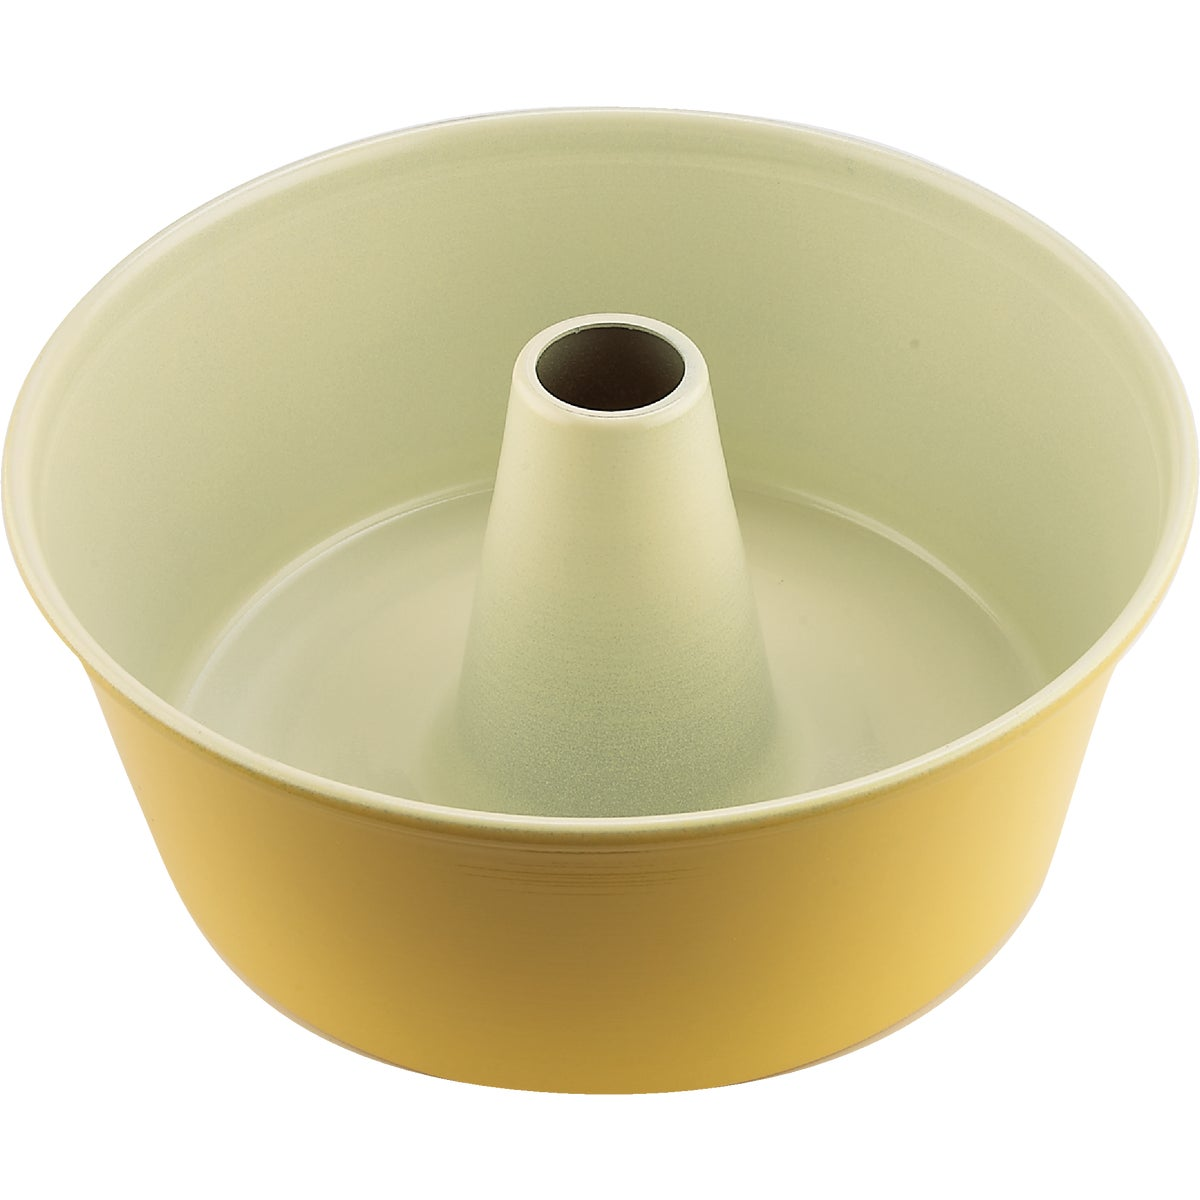 ANGEL FOOD CAKE PAN - 50922 by Nordic Ware/reitenba